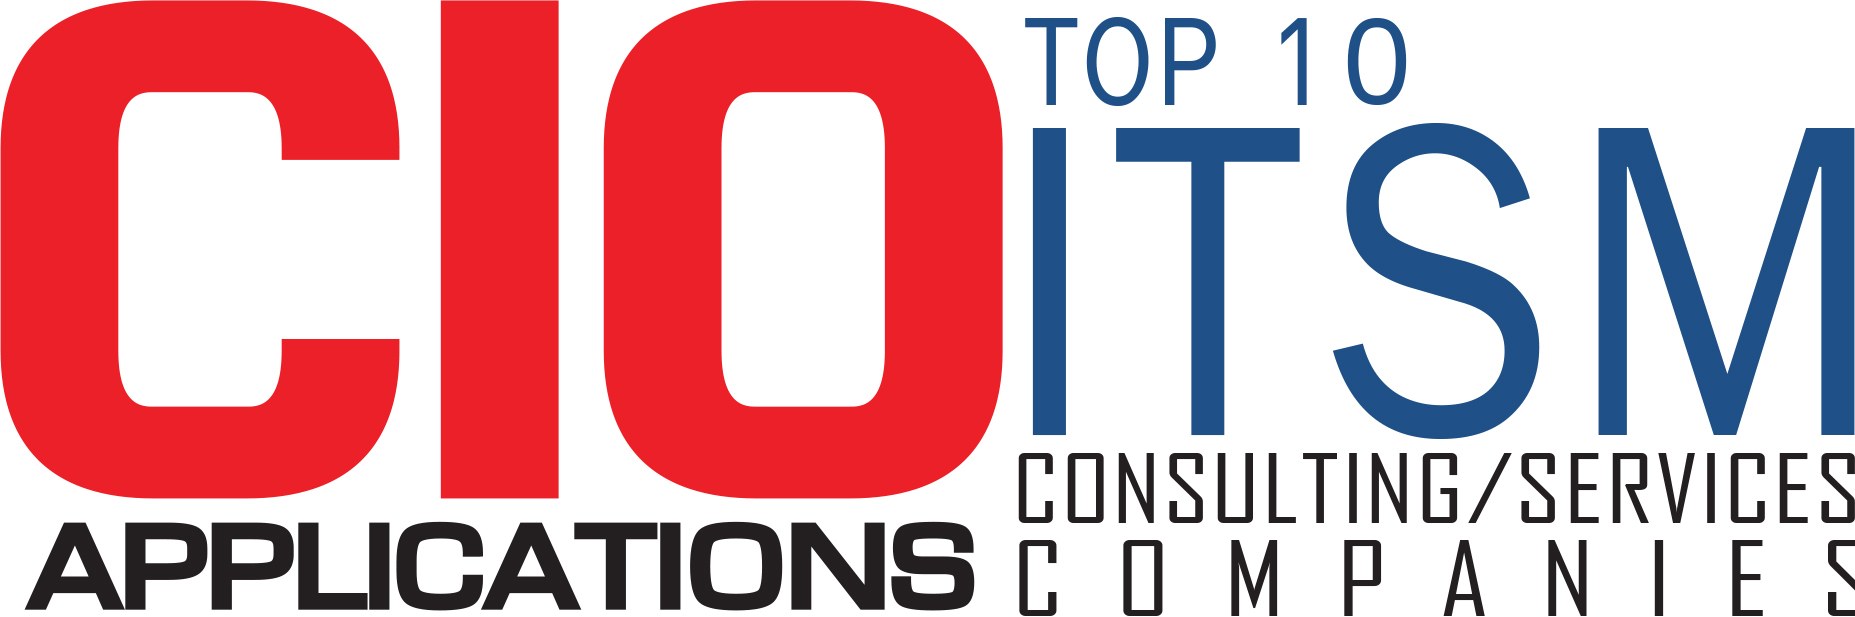 Top ITSM Consulting/Services Companies